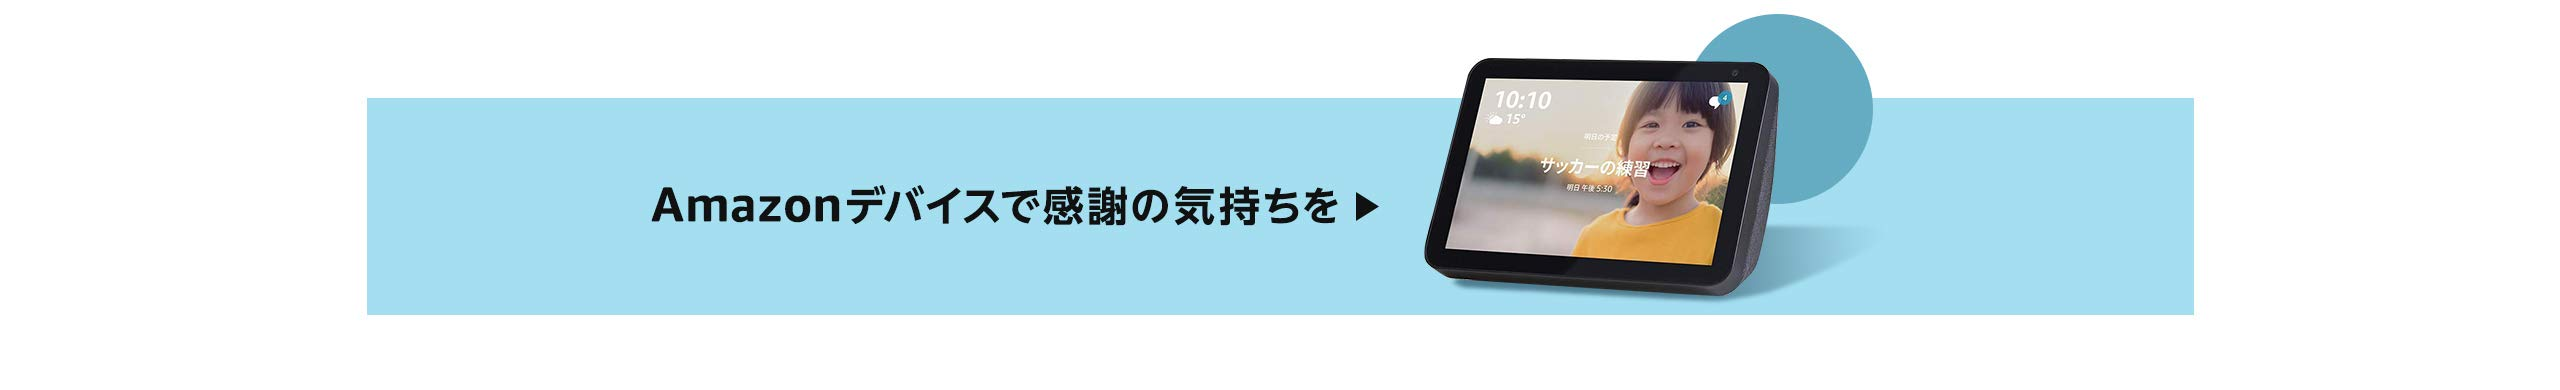 父の日 Amazonデバイスで感謝の  Amazon Echo Kindle Fire Stick